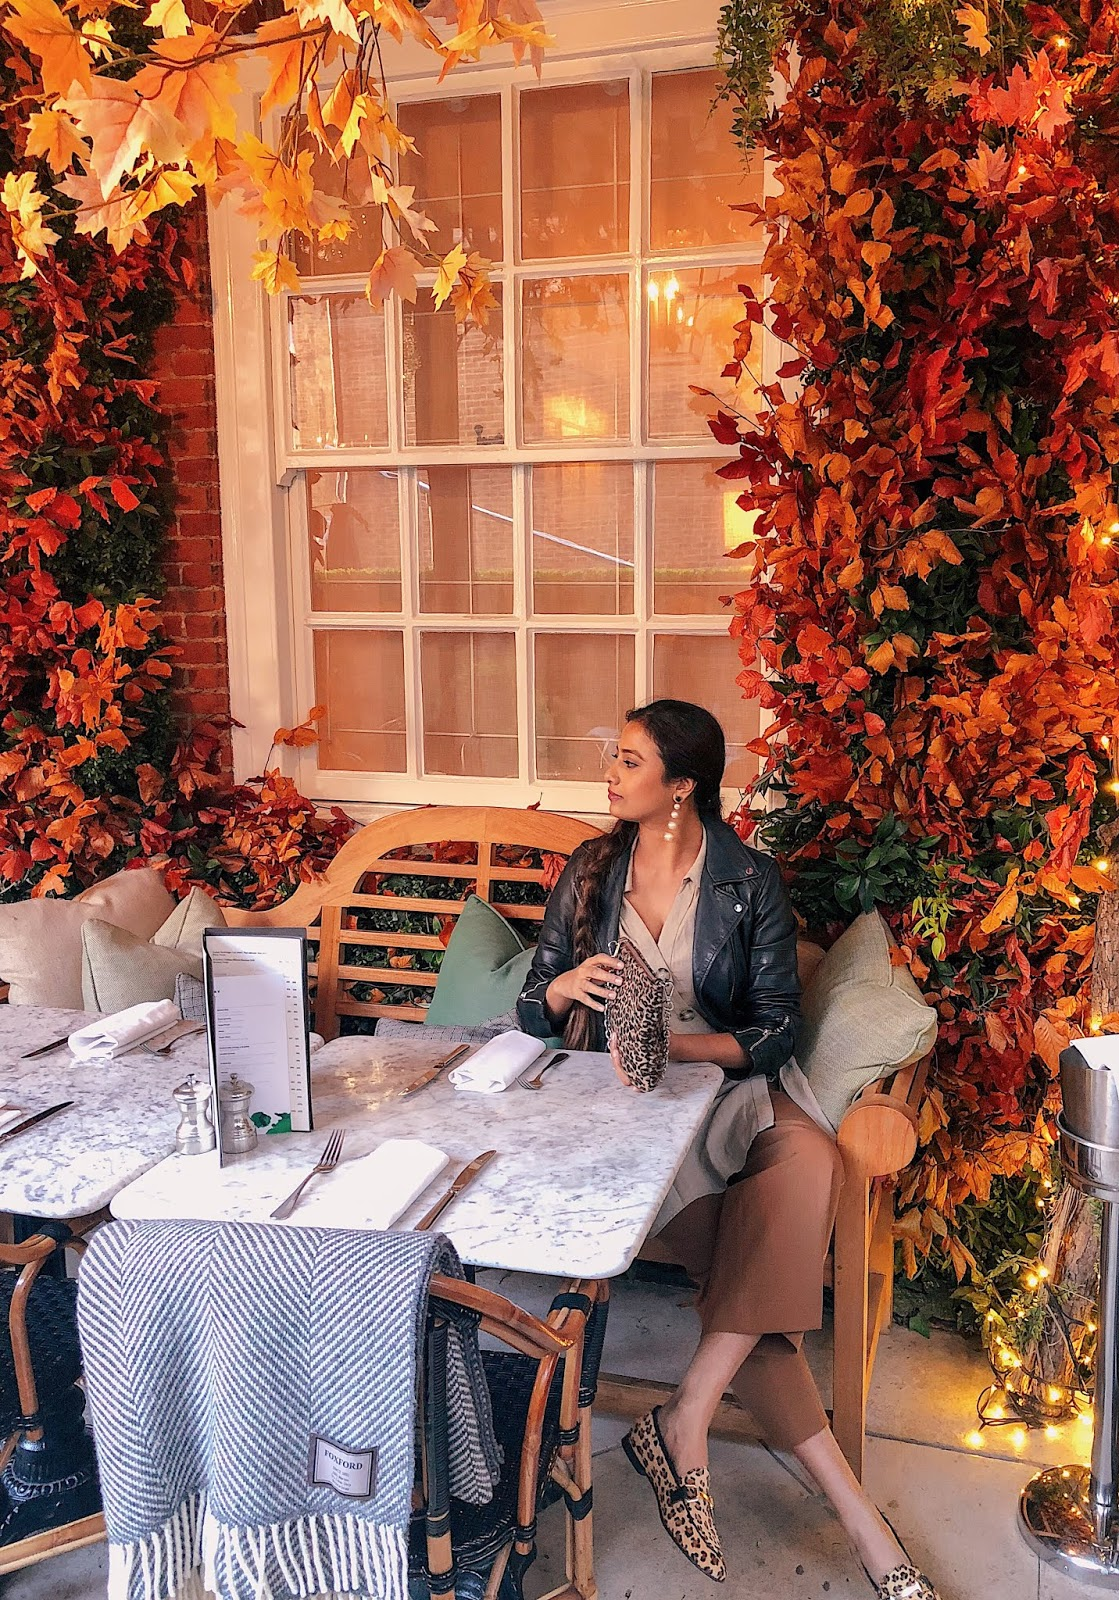 autumn installation dalloway terrace, dalloway terrace london, is dalloway terrace worth a visit, indian blogger, london blog, instagrammable cafes london, london instagram spot